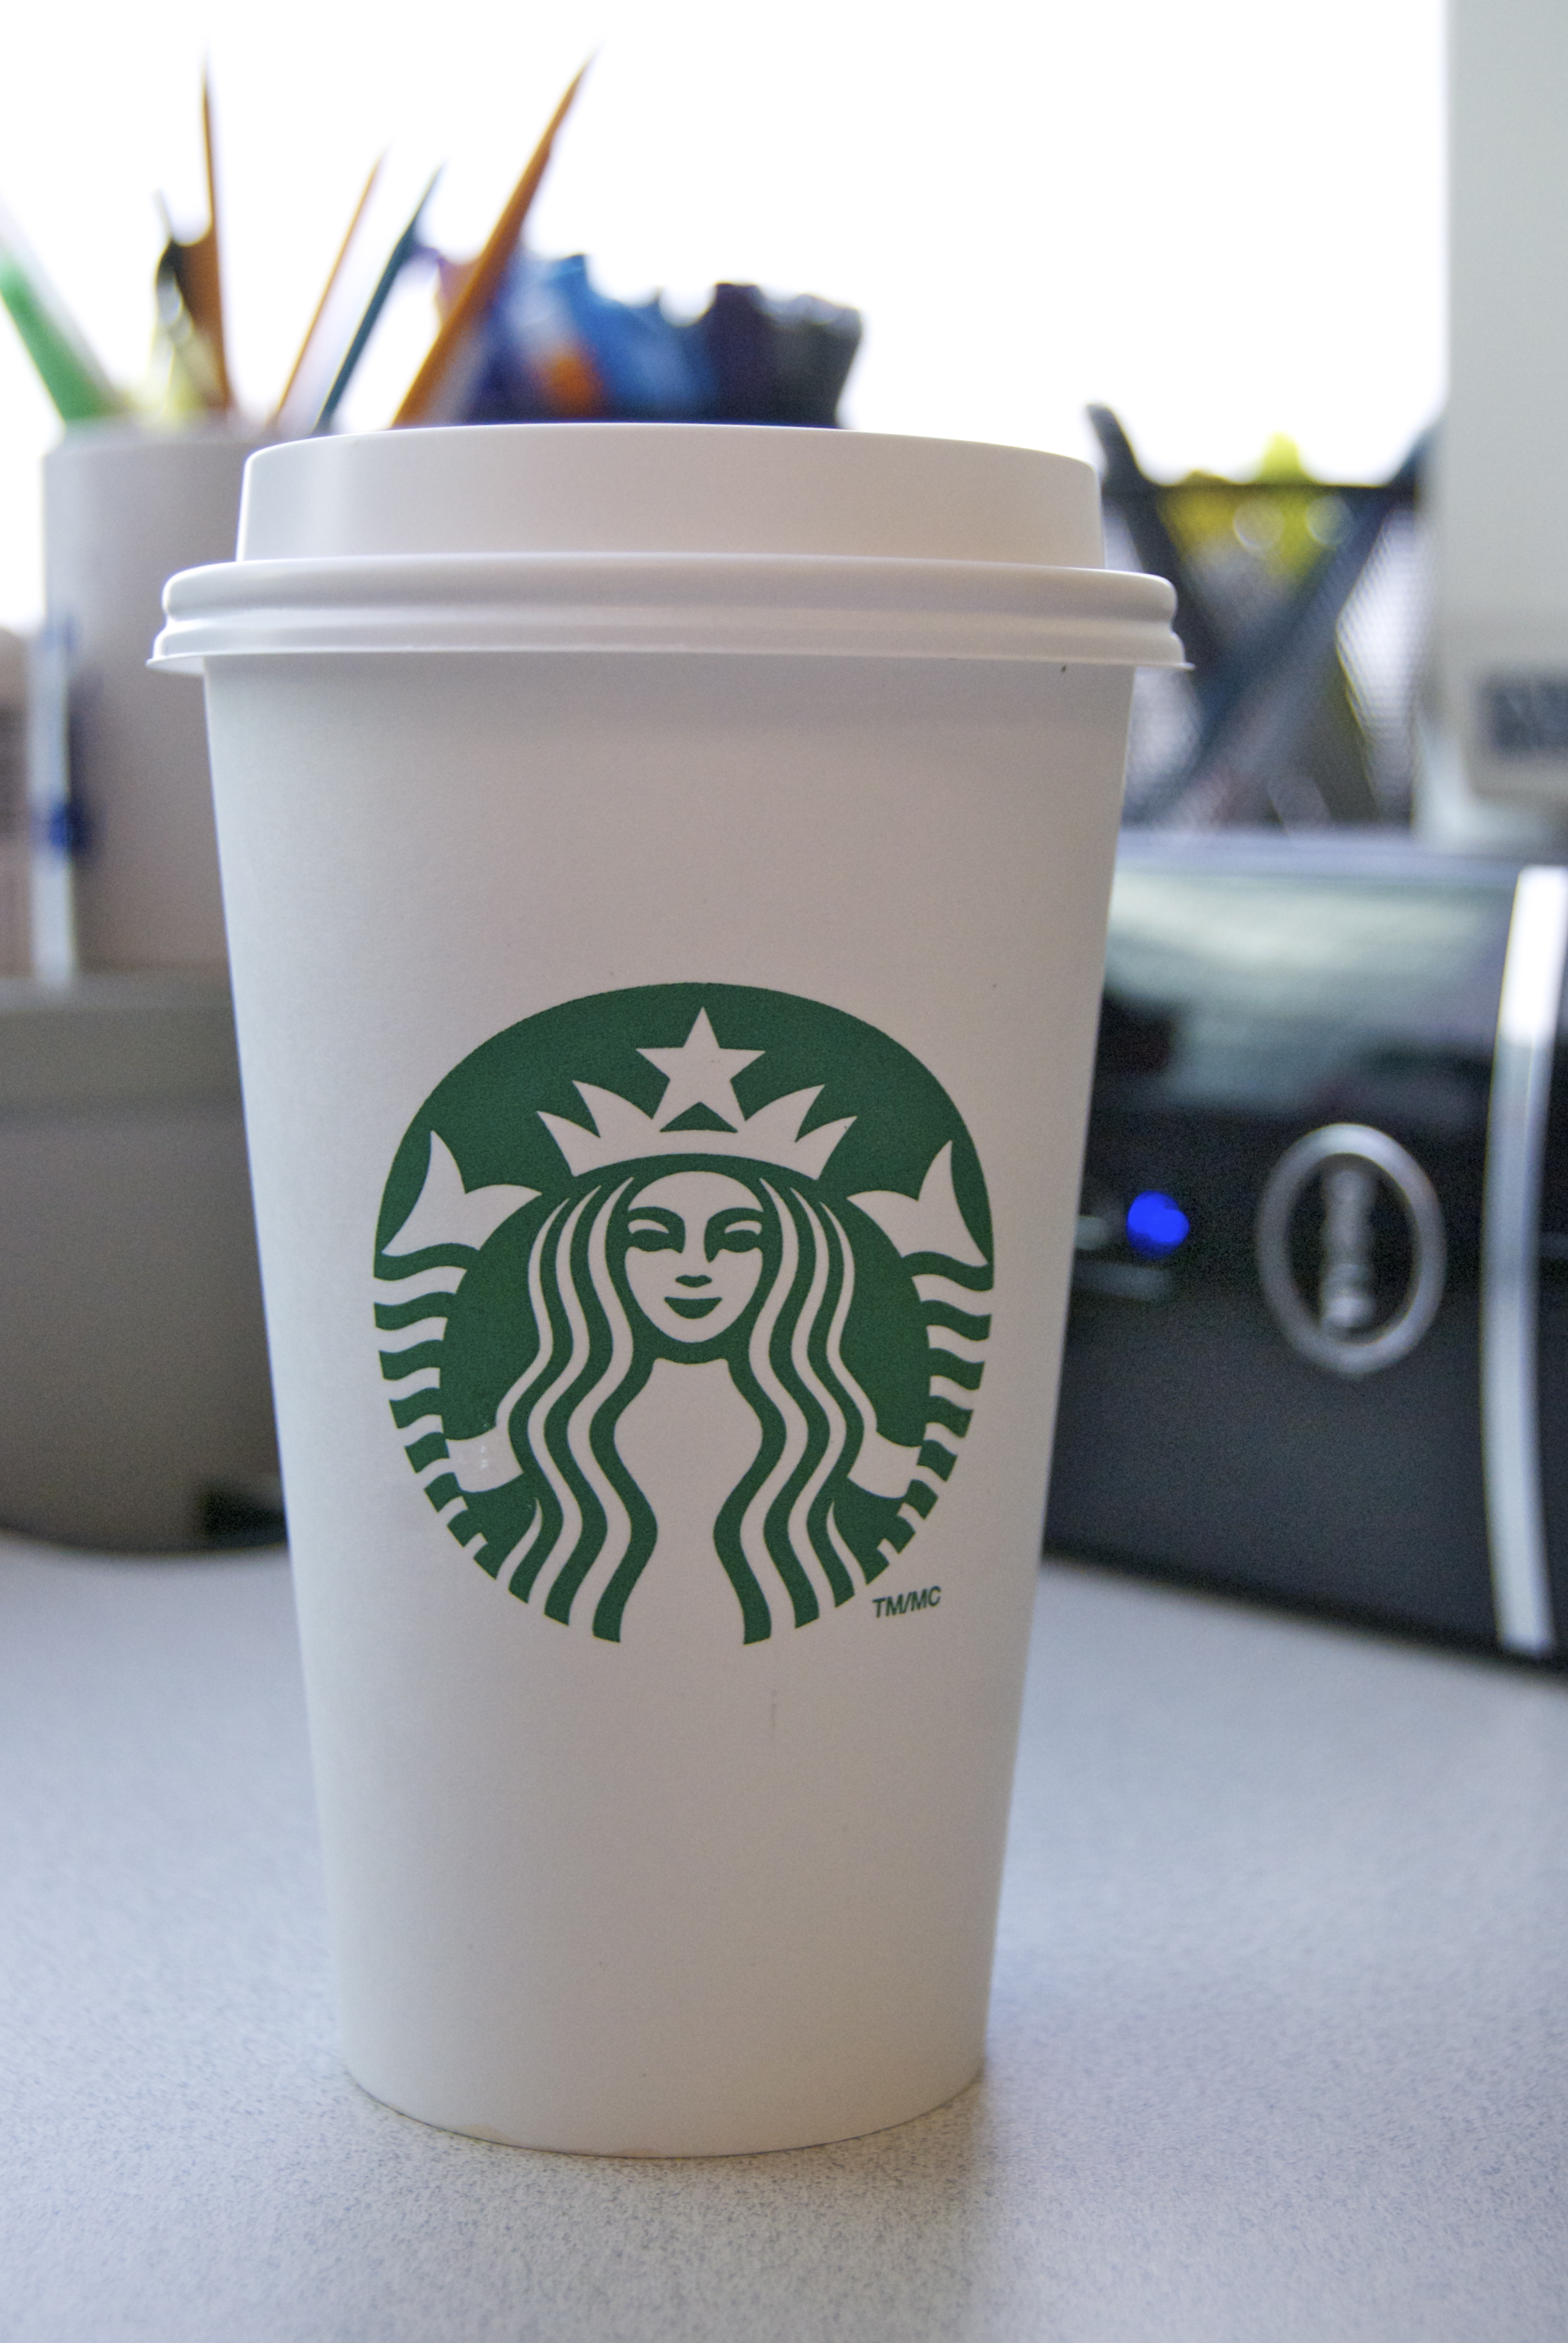 Coffee Cup To Go Starbucks | www.pixshark.com - Images ...